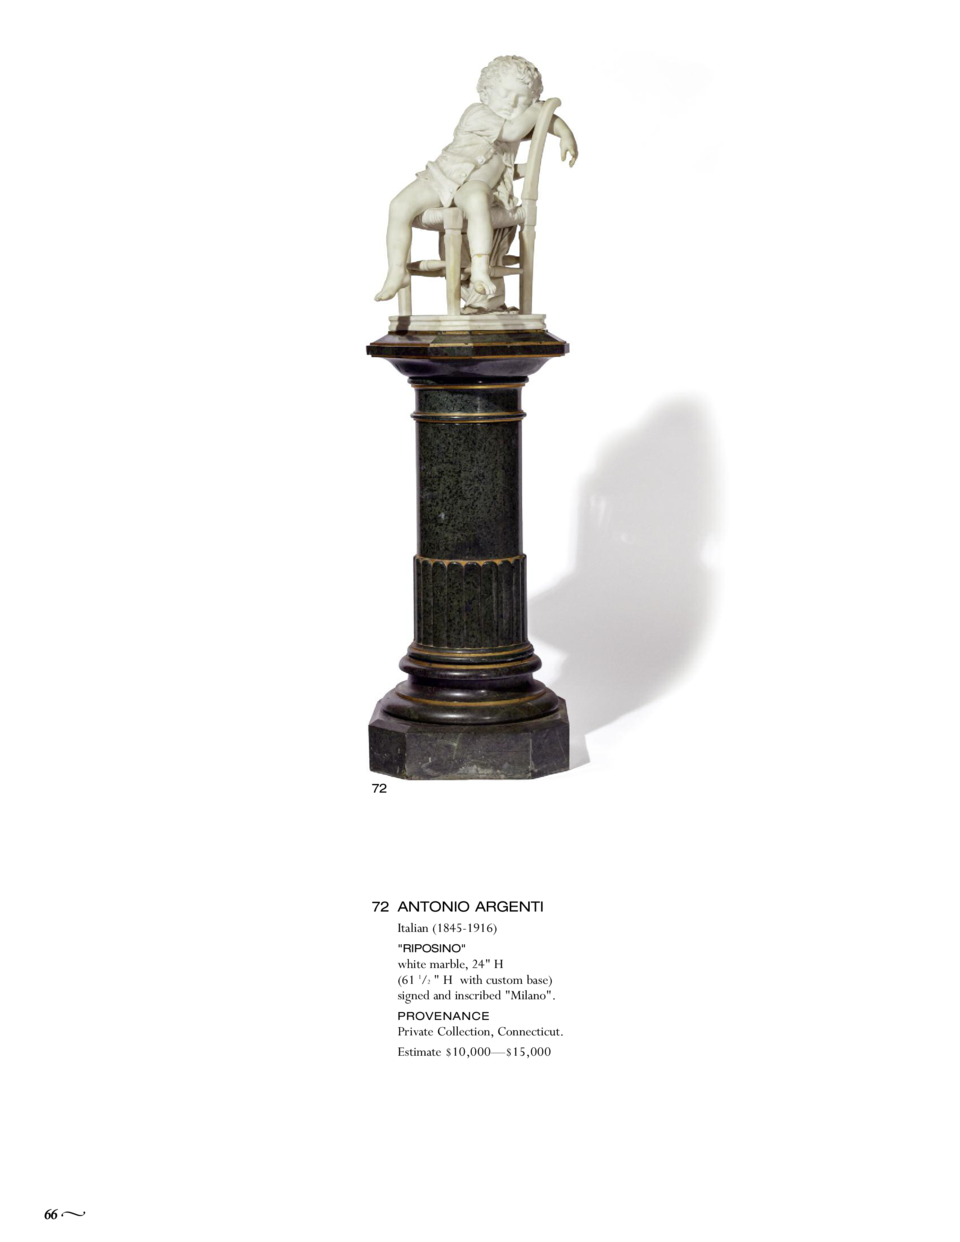 72  72 ANTONIO ARGENTI Italian  1845-1916  white marble, 24  H  61 1 2   H with custom base  signed and inscribed  Milano ...